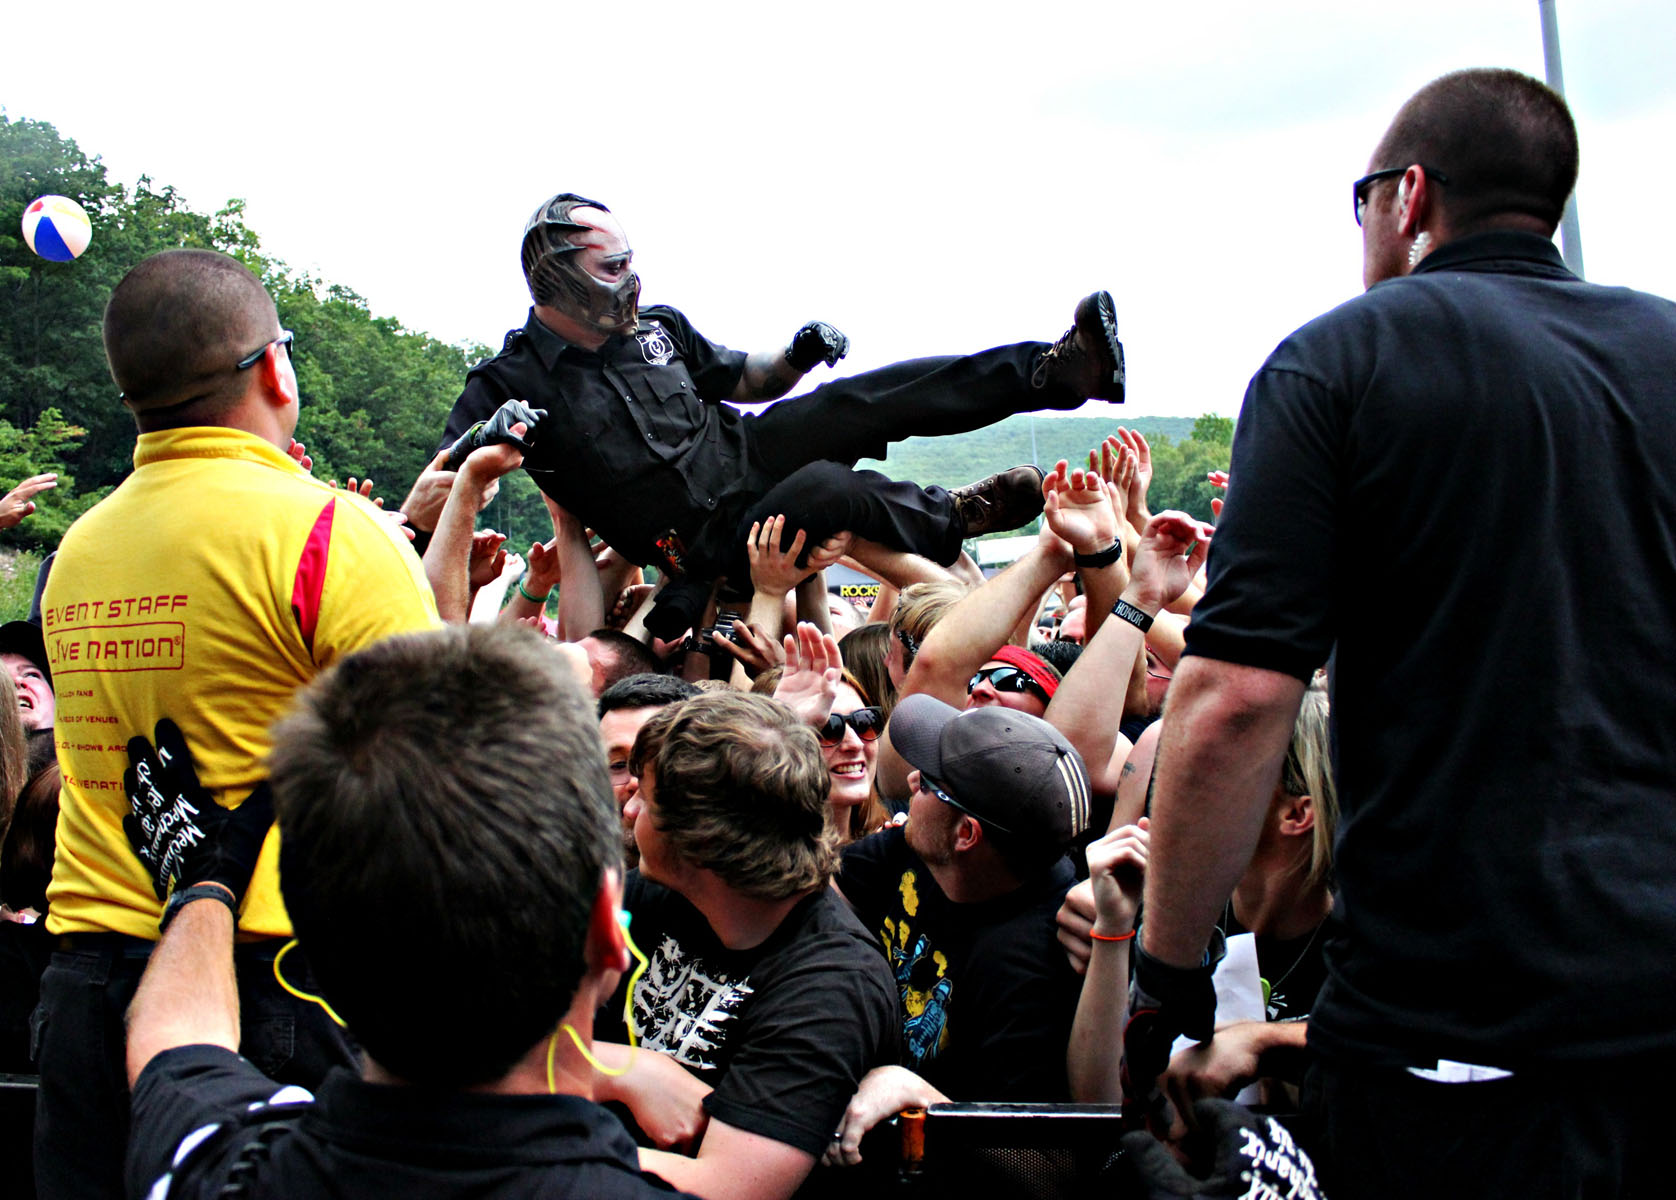 Waylon Reavis of Mushroomhead crowdsurfing